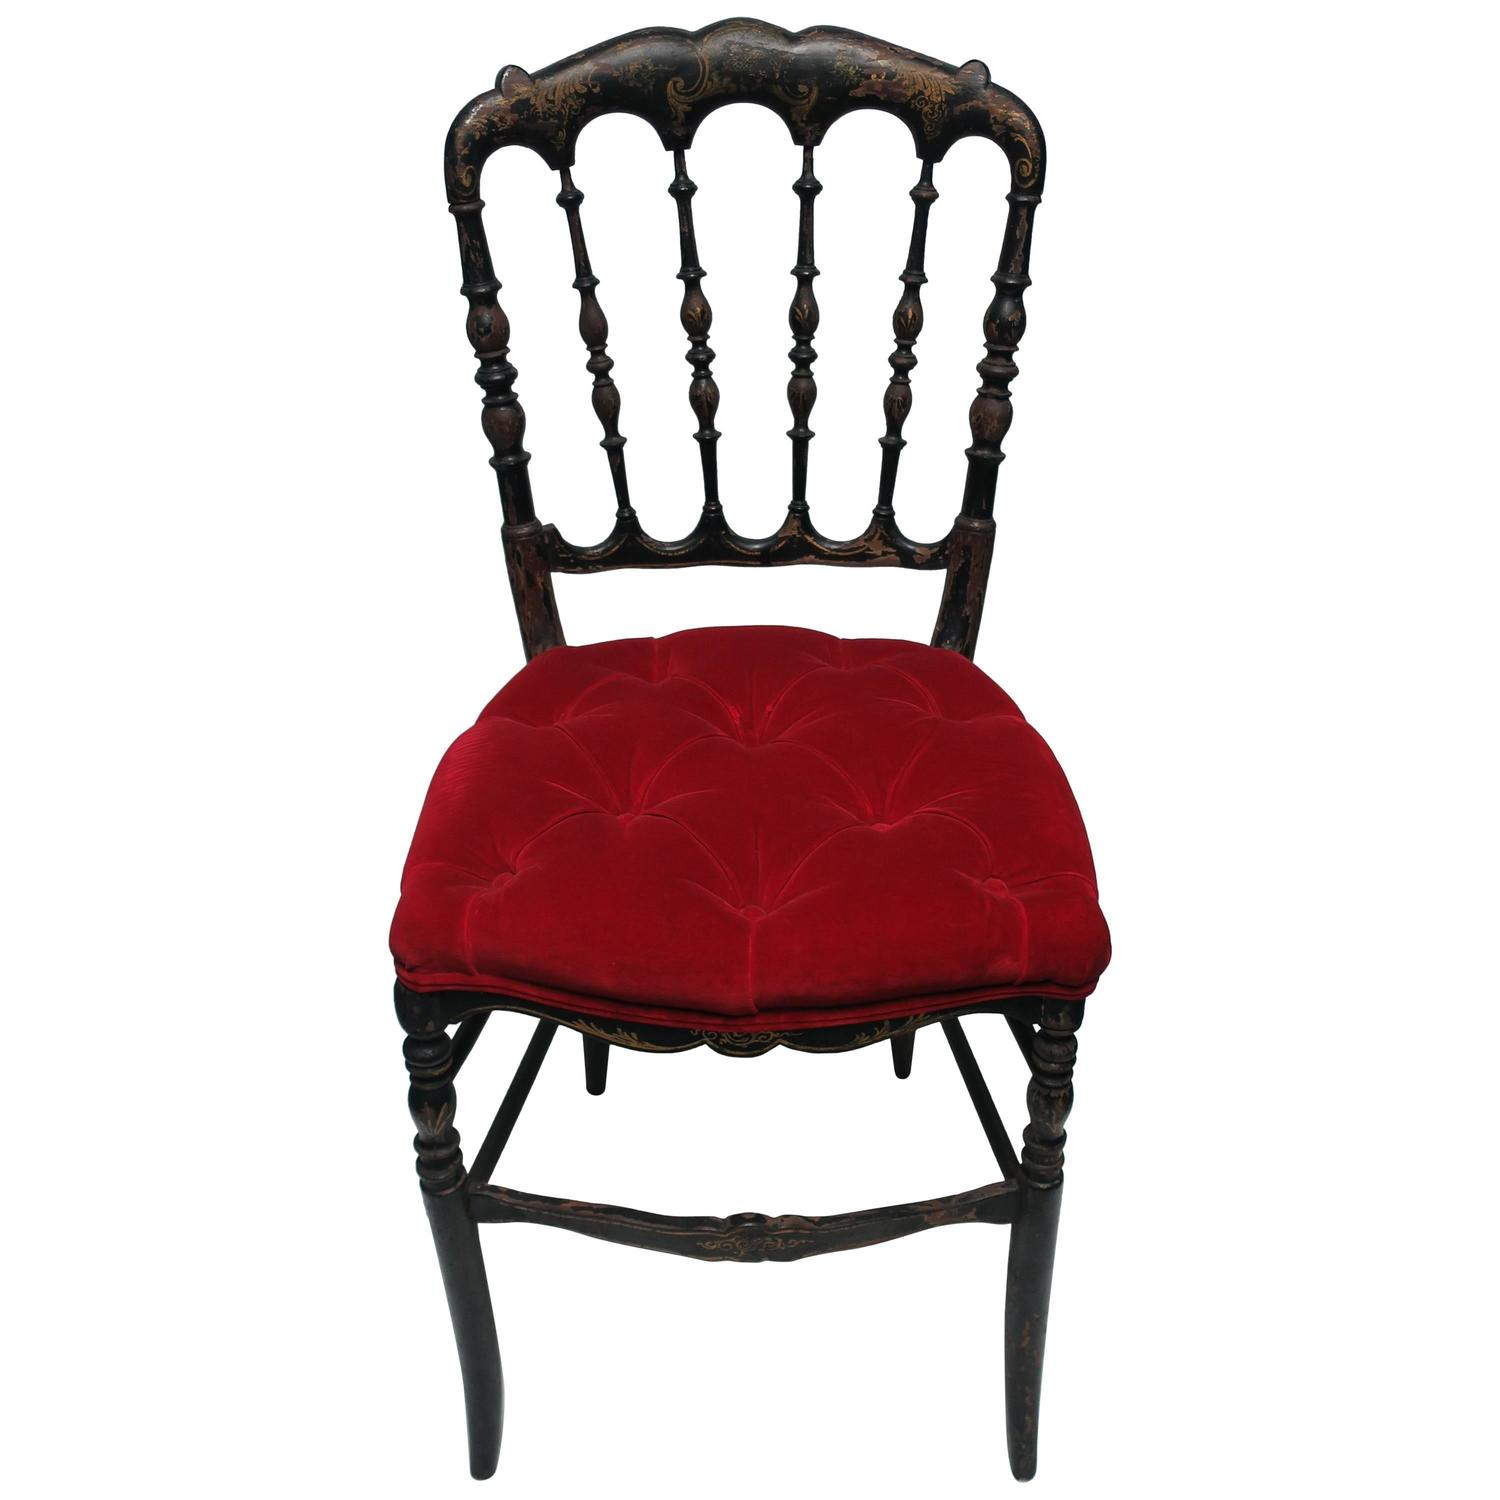 Antique English Chinoiserie Black Chair with Red Velvet Tufted Seat Cushion - Red Velvet Chairs - 61 For Sale On 1stdibs